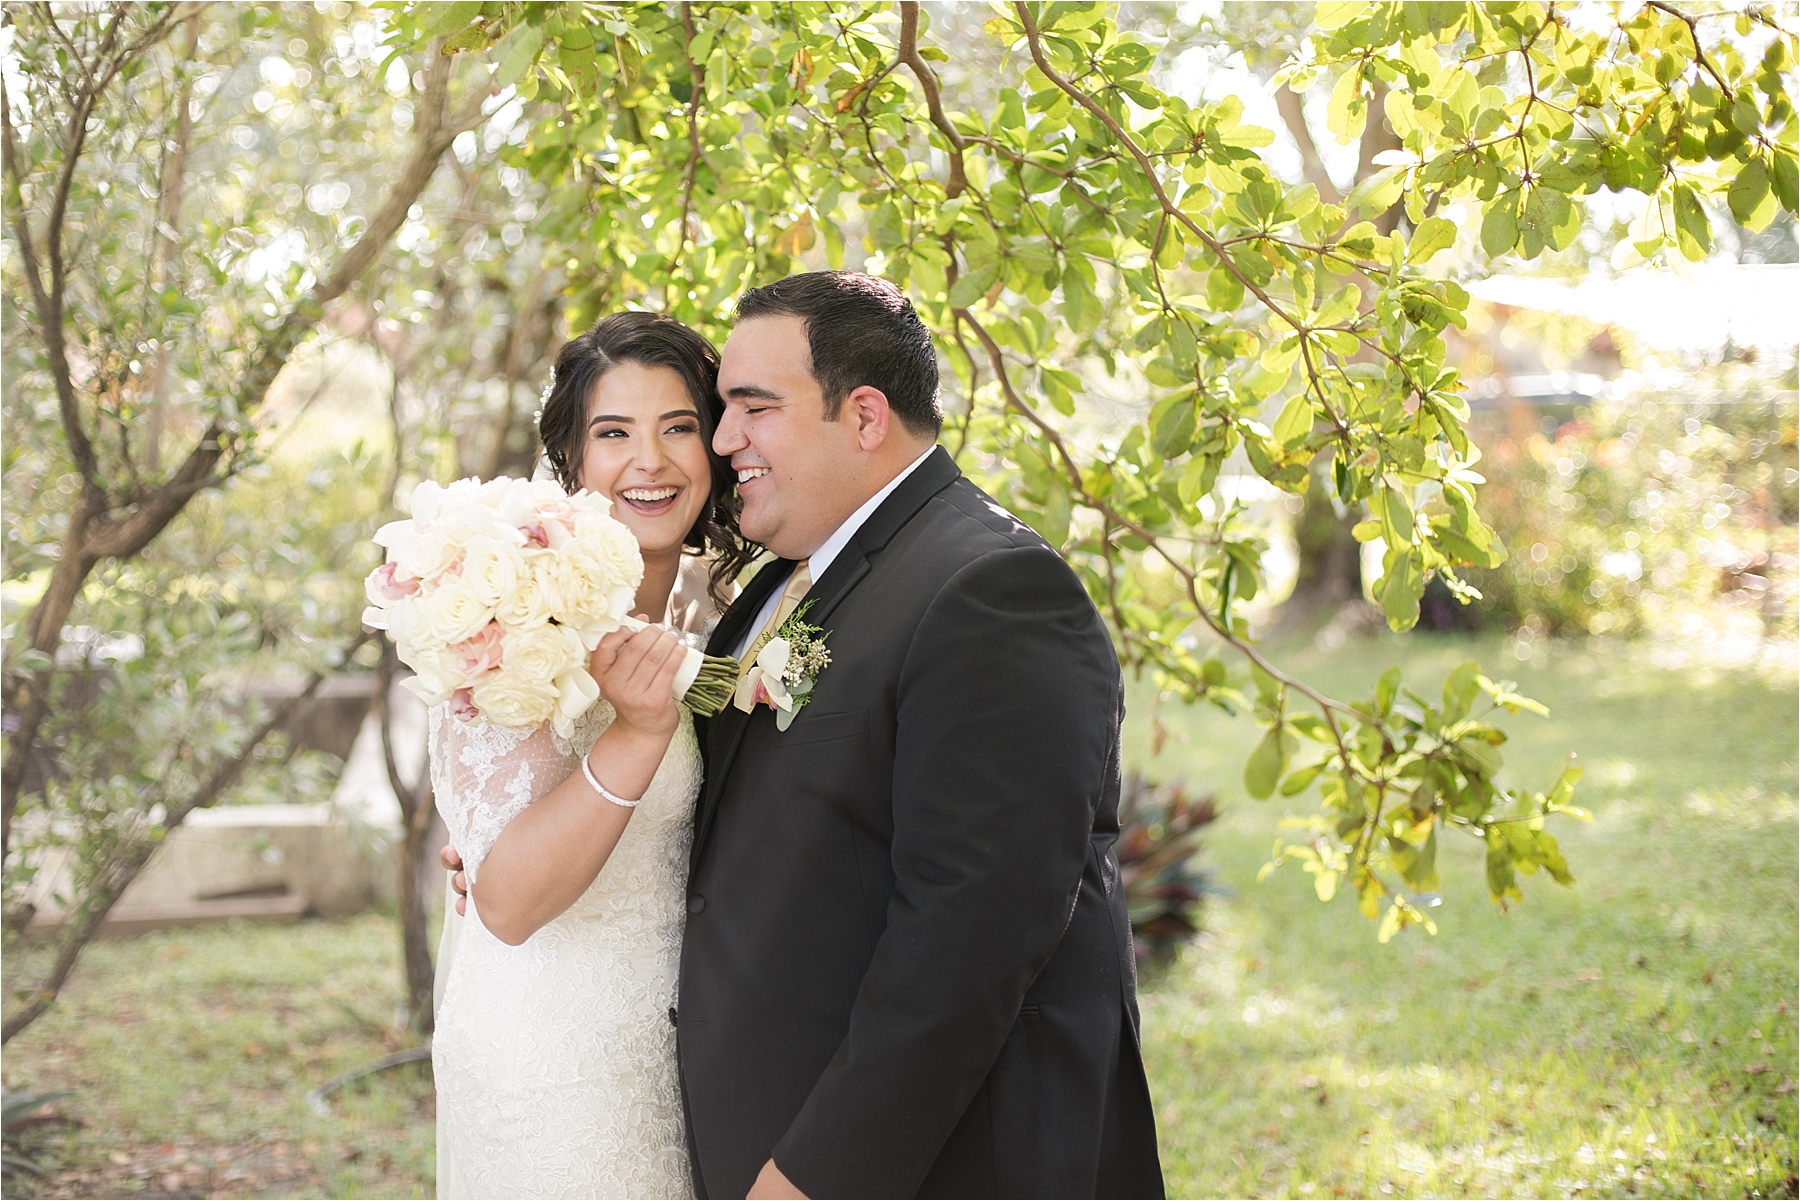 OUR FIRST WEDDING! Carolina and Isaia's Wedding